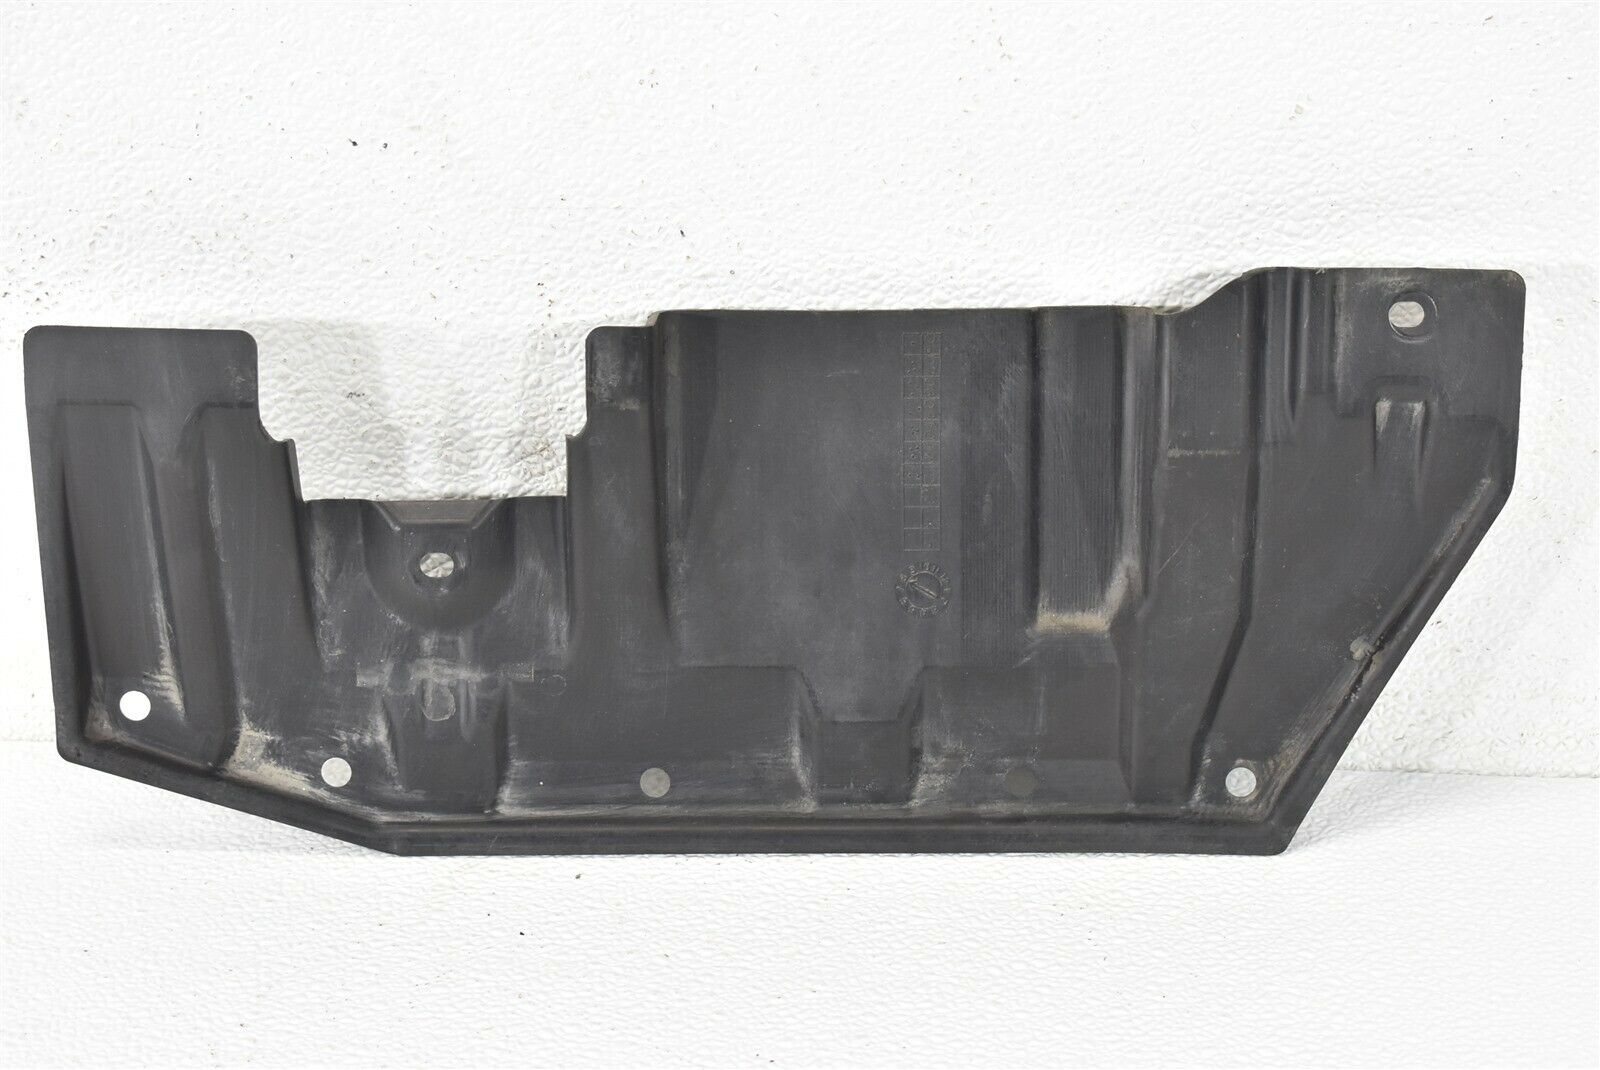 Mitsubishi Evo X Transfer Case Skid Plate Shield Evolution 10 Oem 2008-2015